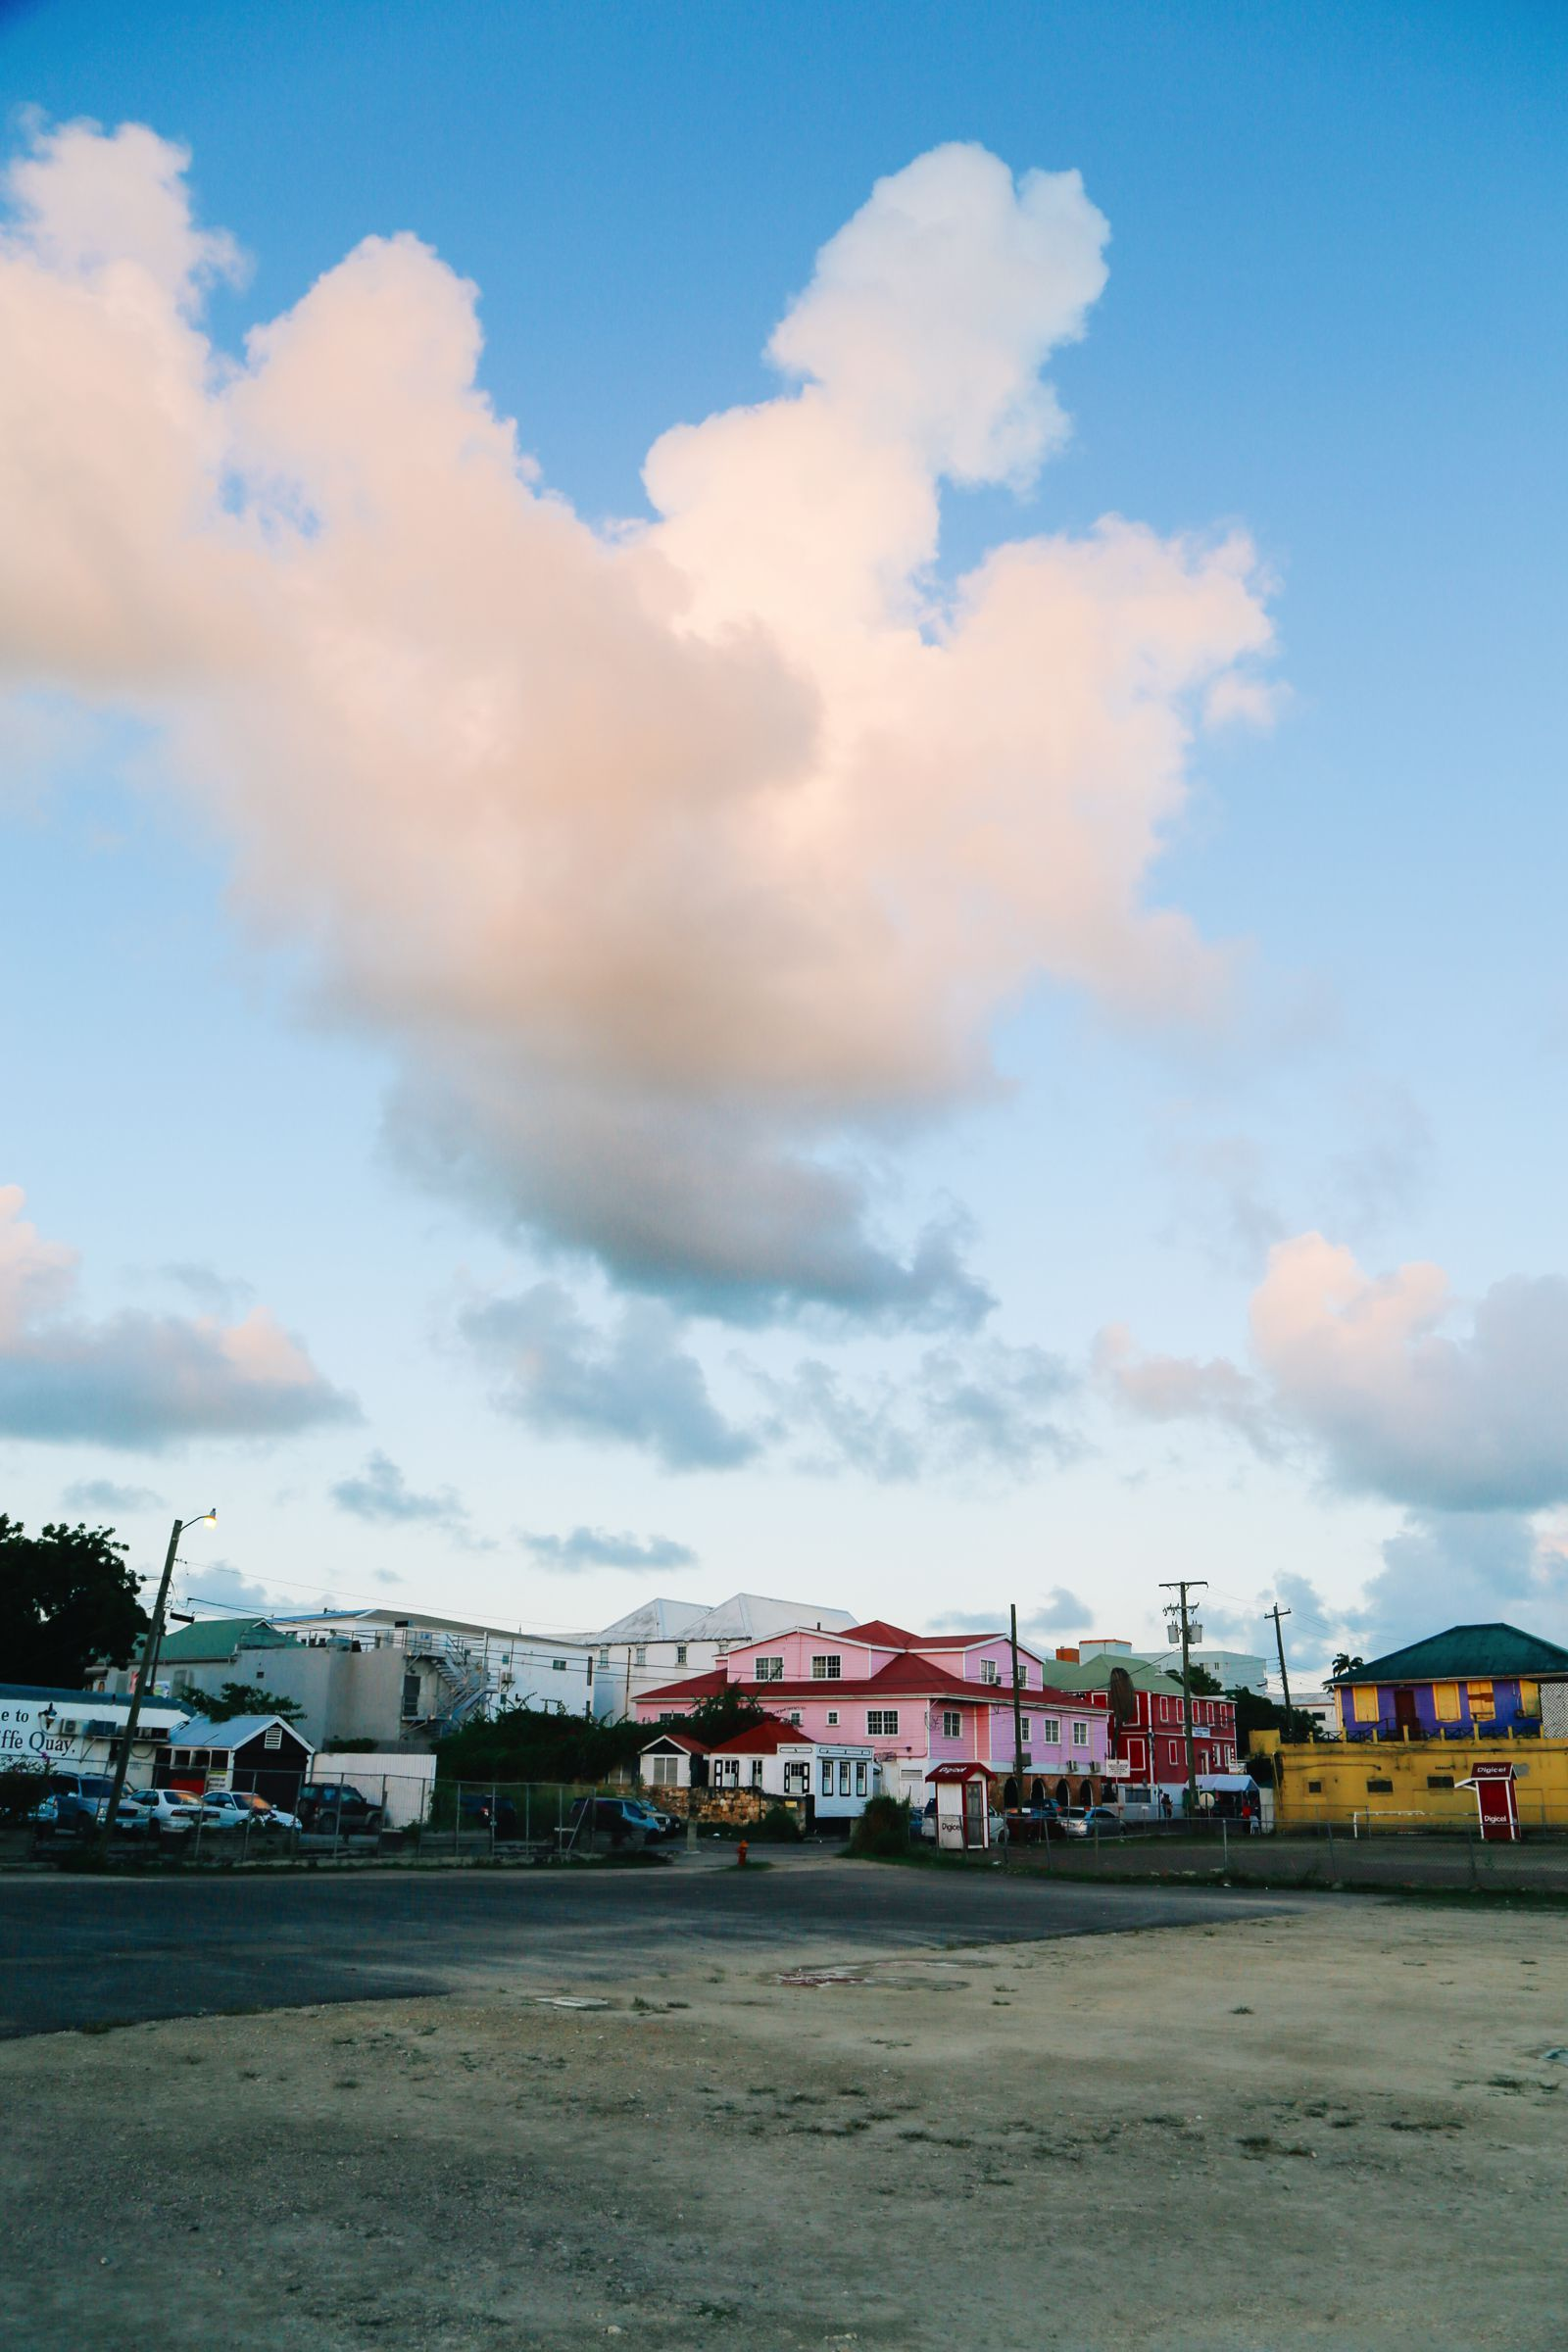 Caribbean Photo Diary - An Evening In St John's, Antigua (7)